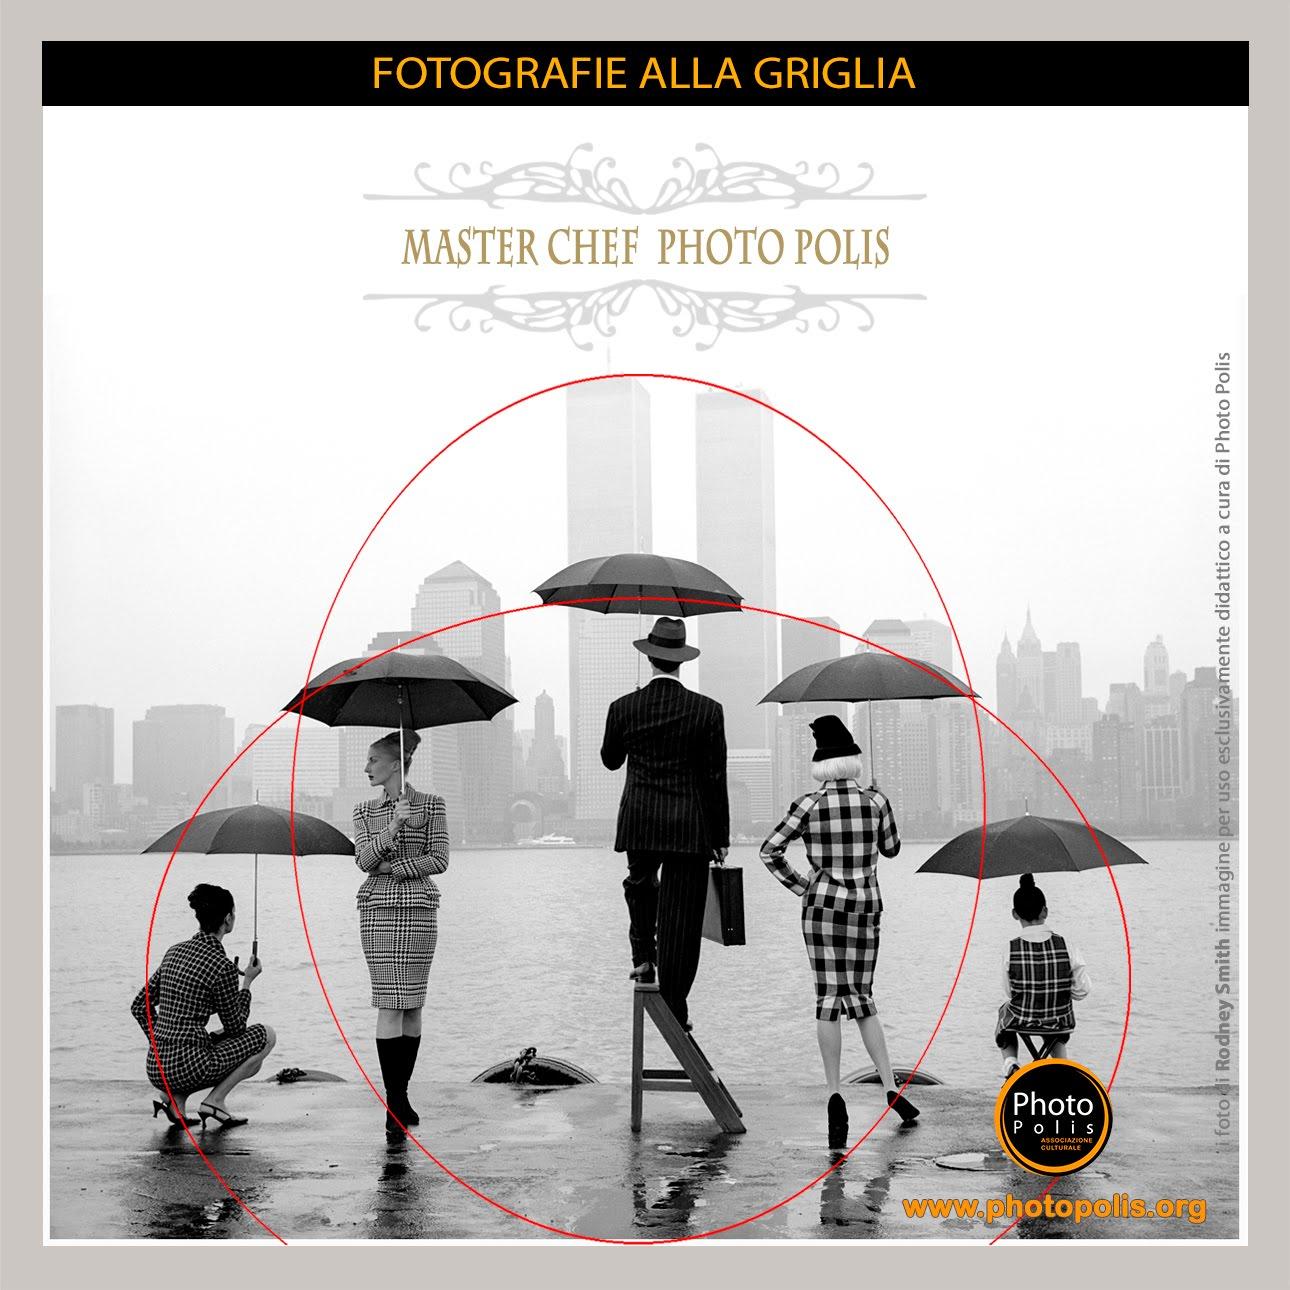 Fotografie alla griglia - Master Chef Photo Polis